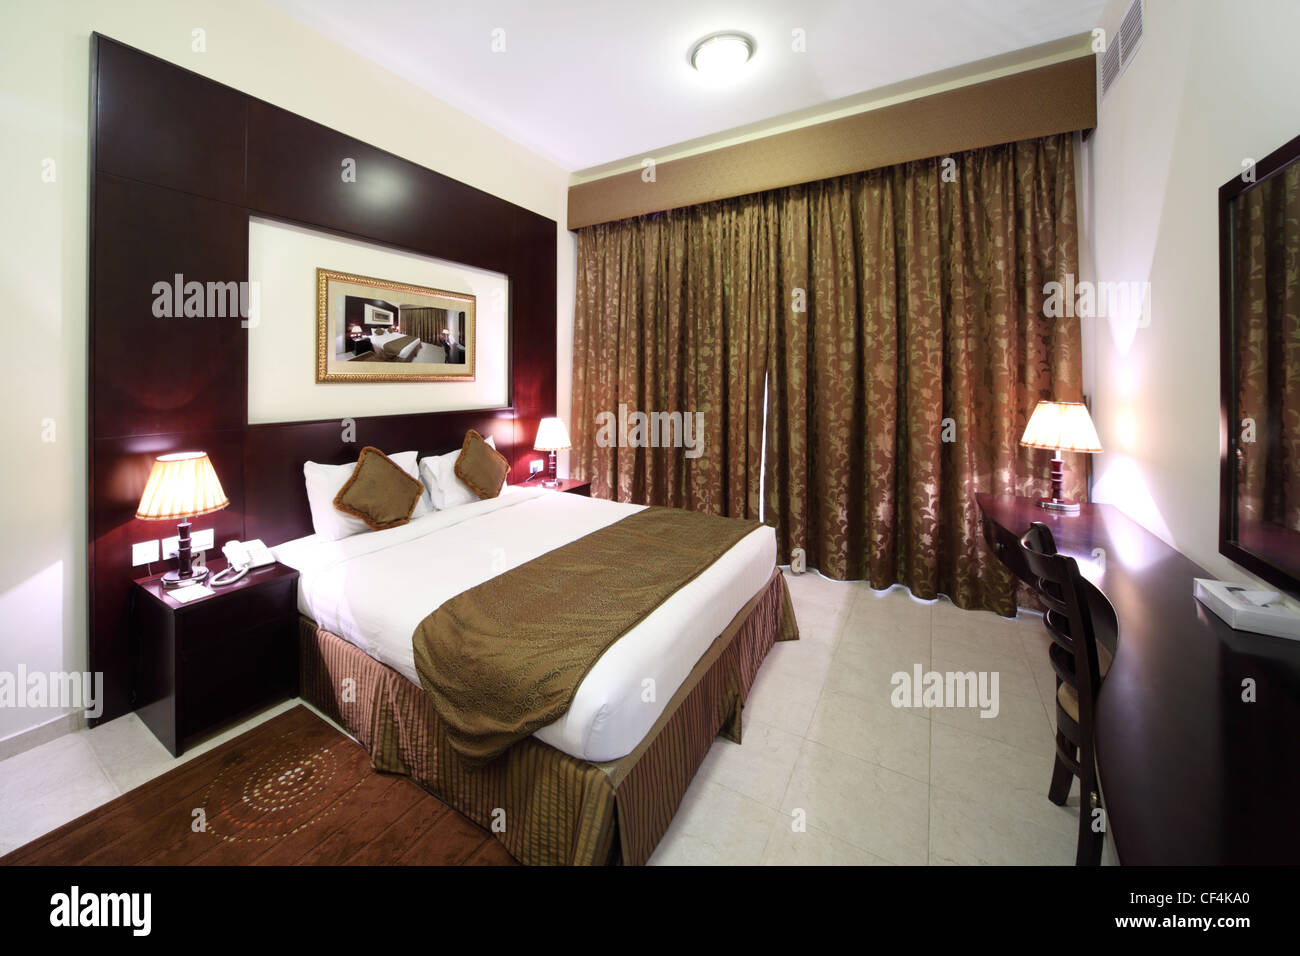 bedroom side view. Bedroom With White Walls, Closed Curtain And Big Double Bed Side View